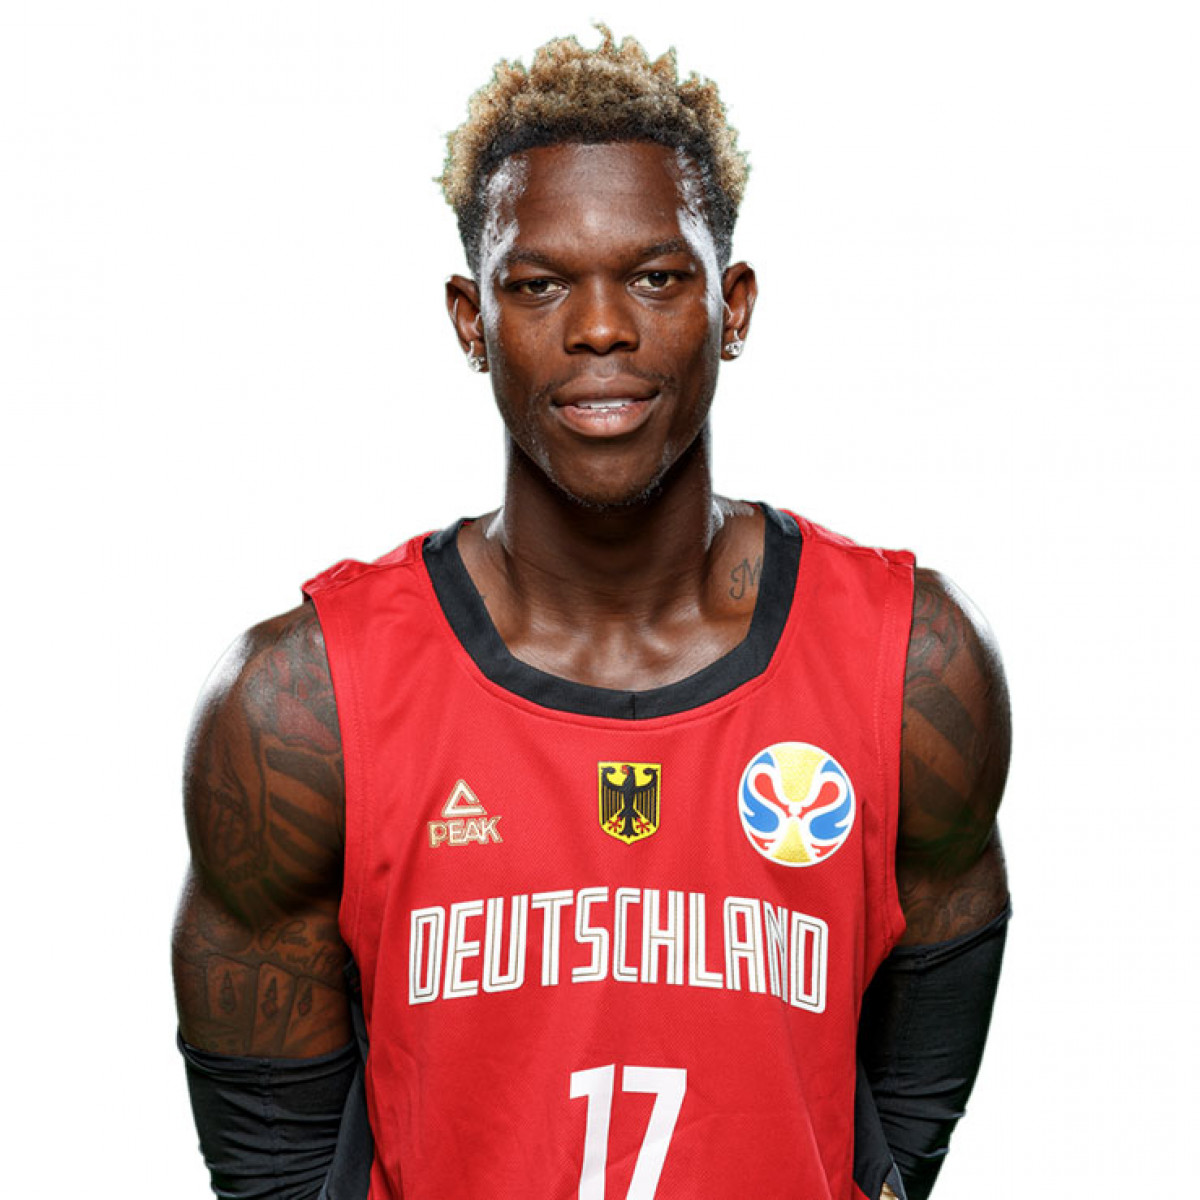 Photo of Dennis Schroder, 2019-2020 season